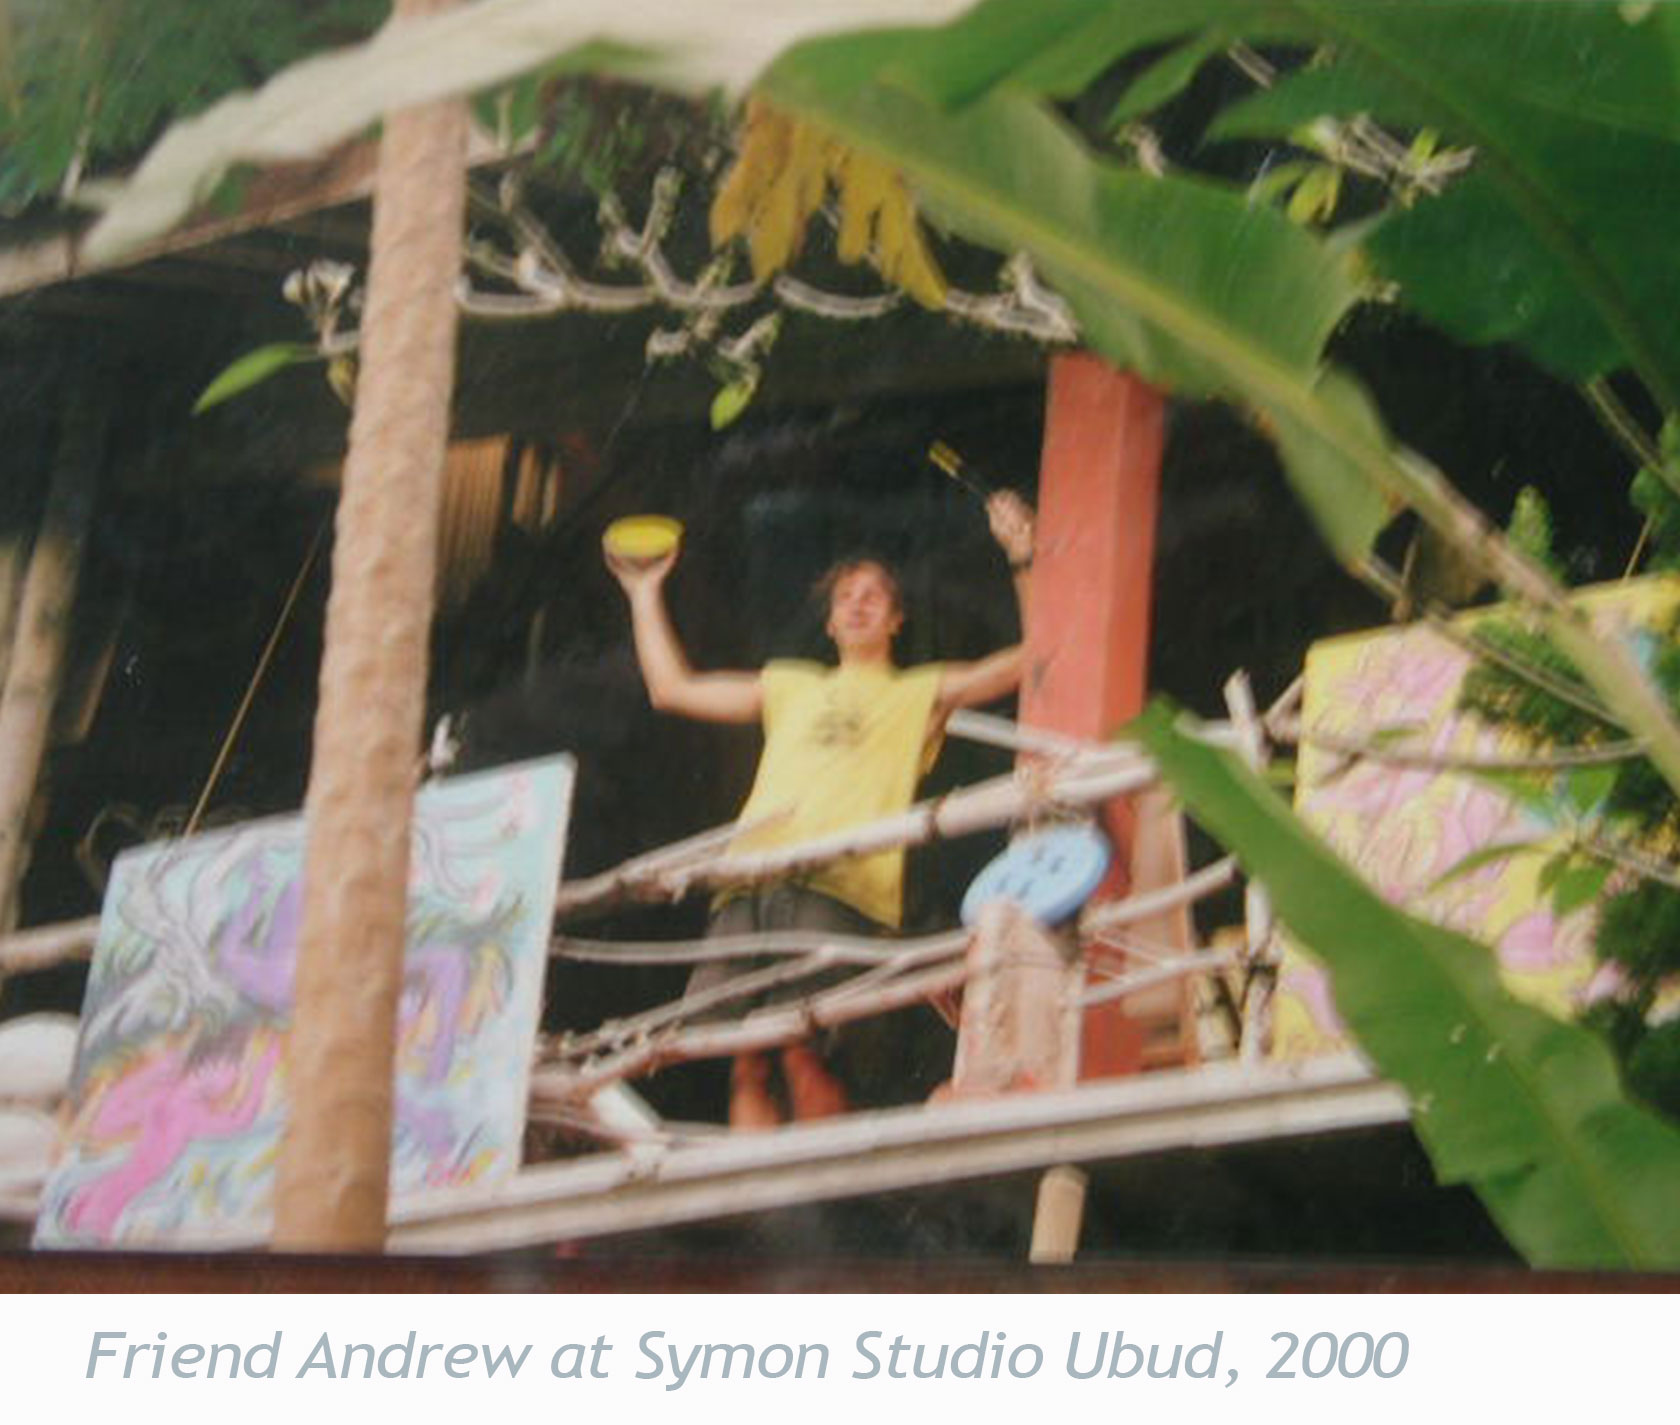 Friend-Andrew-at-Symon-Studio-2000